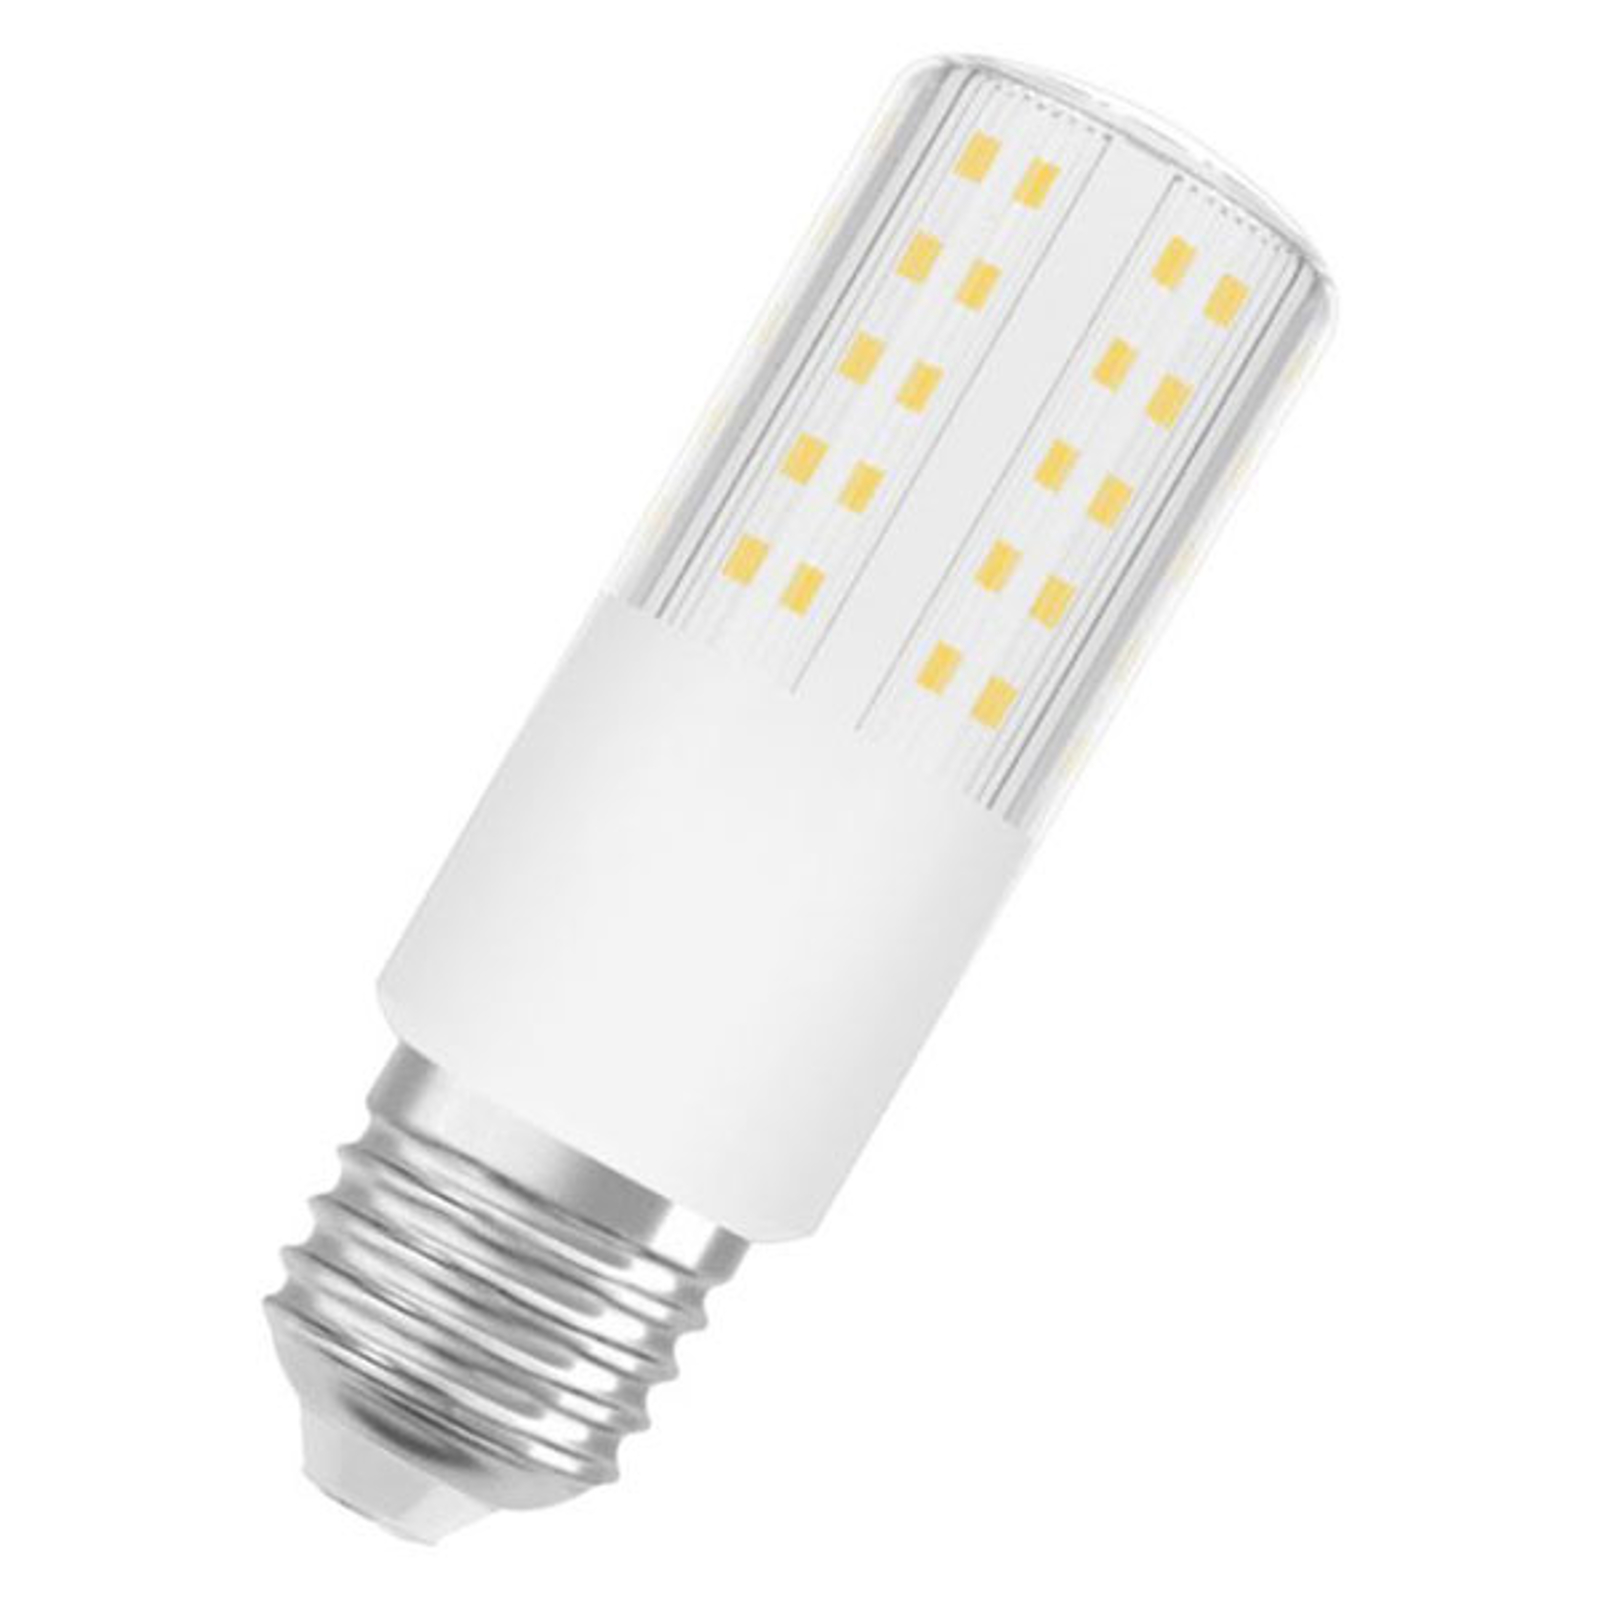 OSRAM LED-Lampe Special T E27 7,5W 2.700K dimmbar